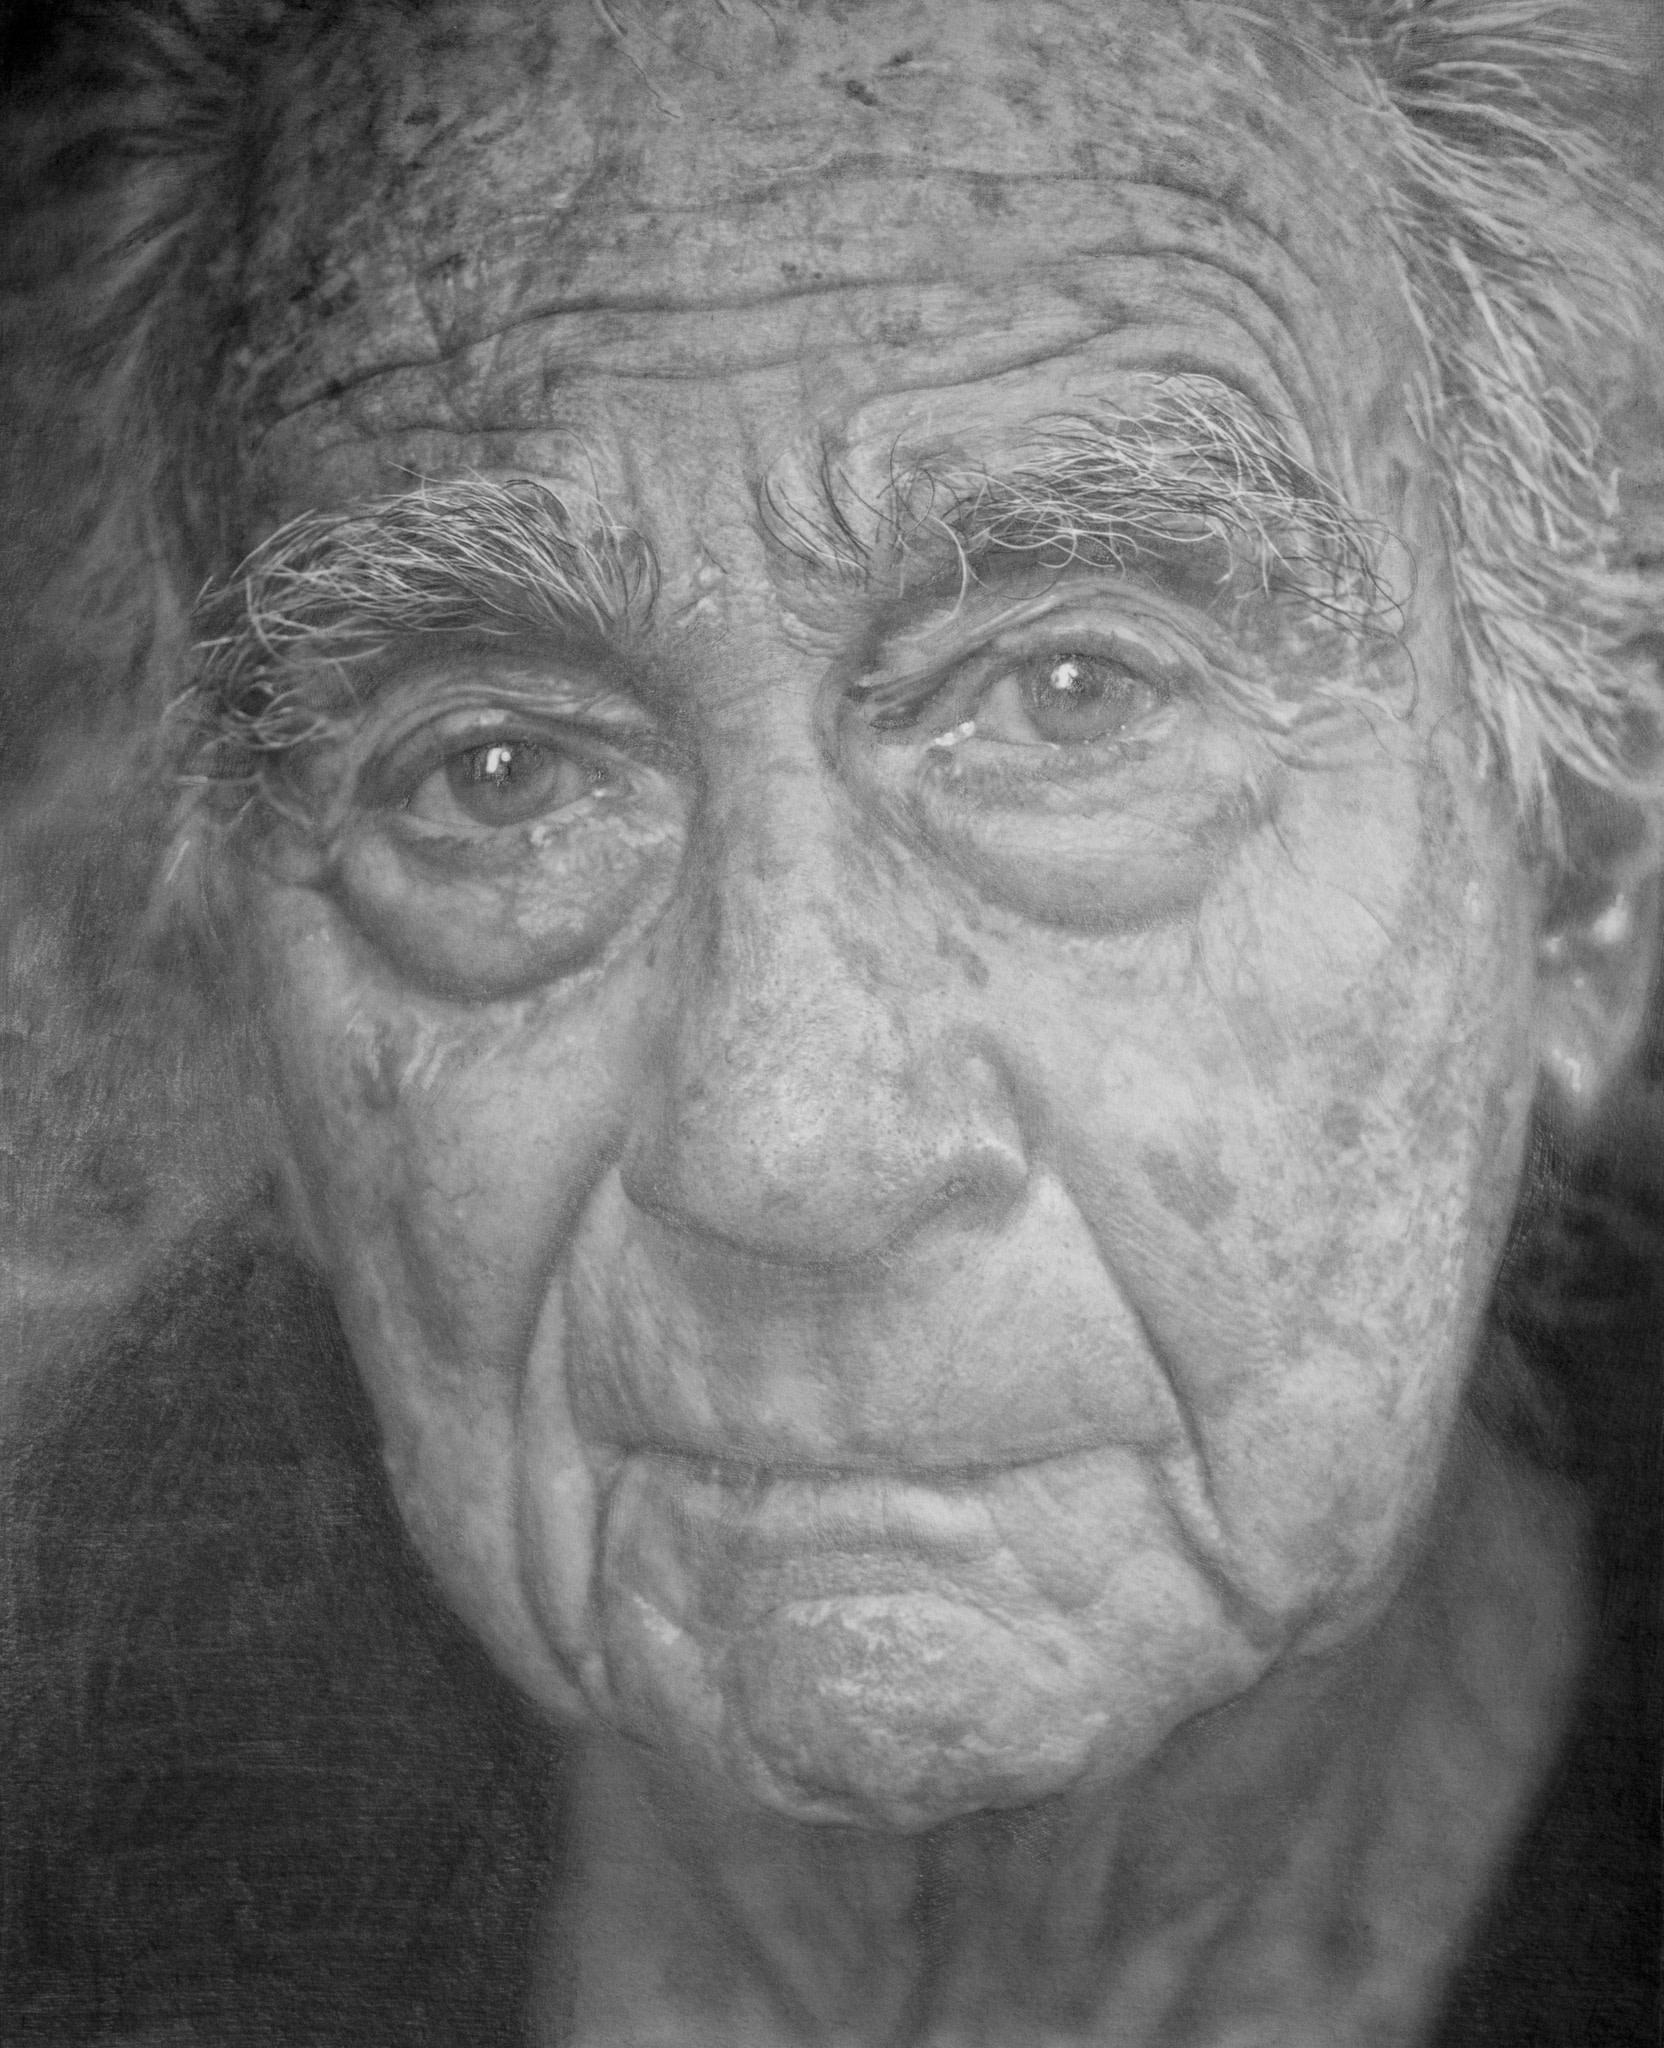 <span class=&#34;link fancybox-details-link&#34;><a href=&#34;/artists/77-paul-cadden/works/1882/&#34;>View Detail Page</a></span><div class=&#34;artist&#34;><strong>Paul Cadden</strong></div> <div class=&#34;title&#34;><em>One of These Things First</em></div> <div class=&#34;medium&#34;>pencil on paper</div> <div class=&#34;dimensions&#34;>38 x 32 cm</div>